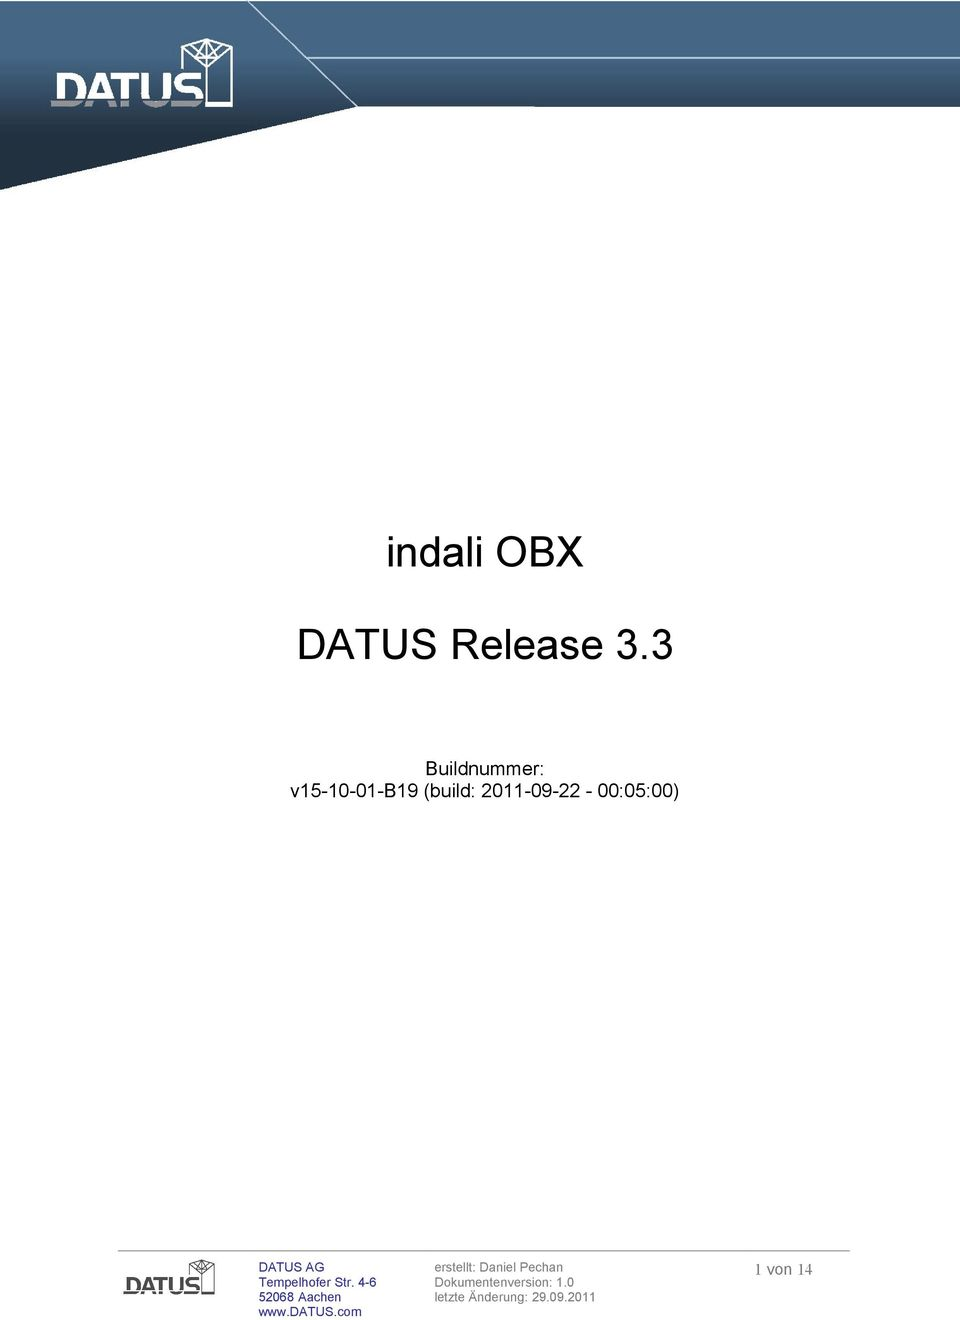 2 indali OBX DATUS Release 3.